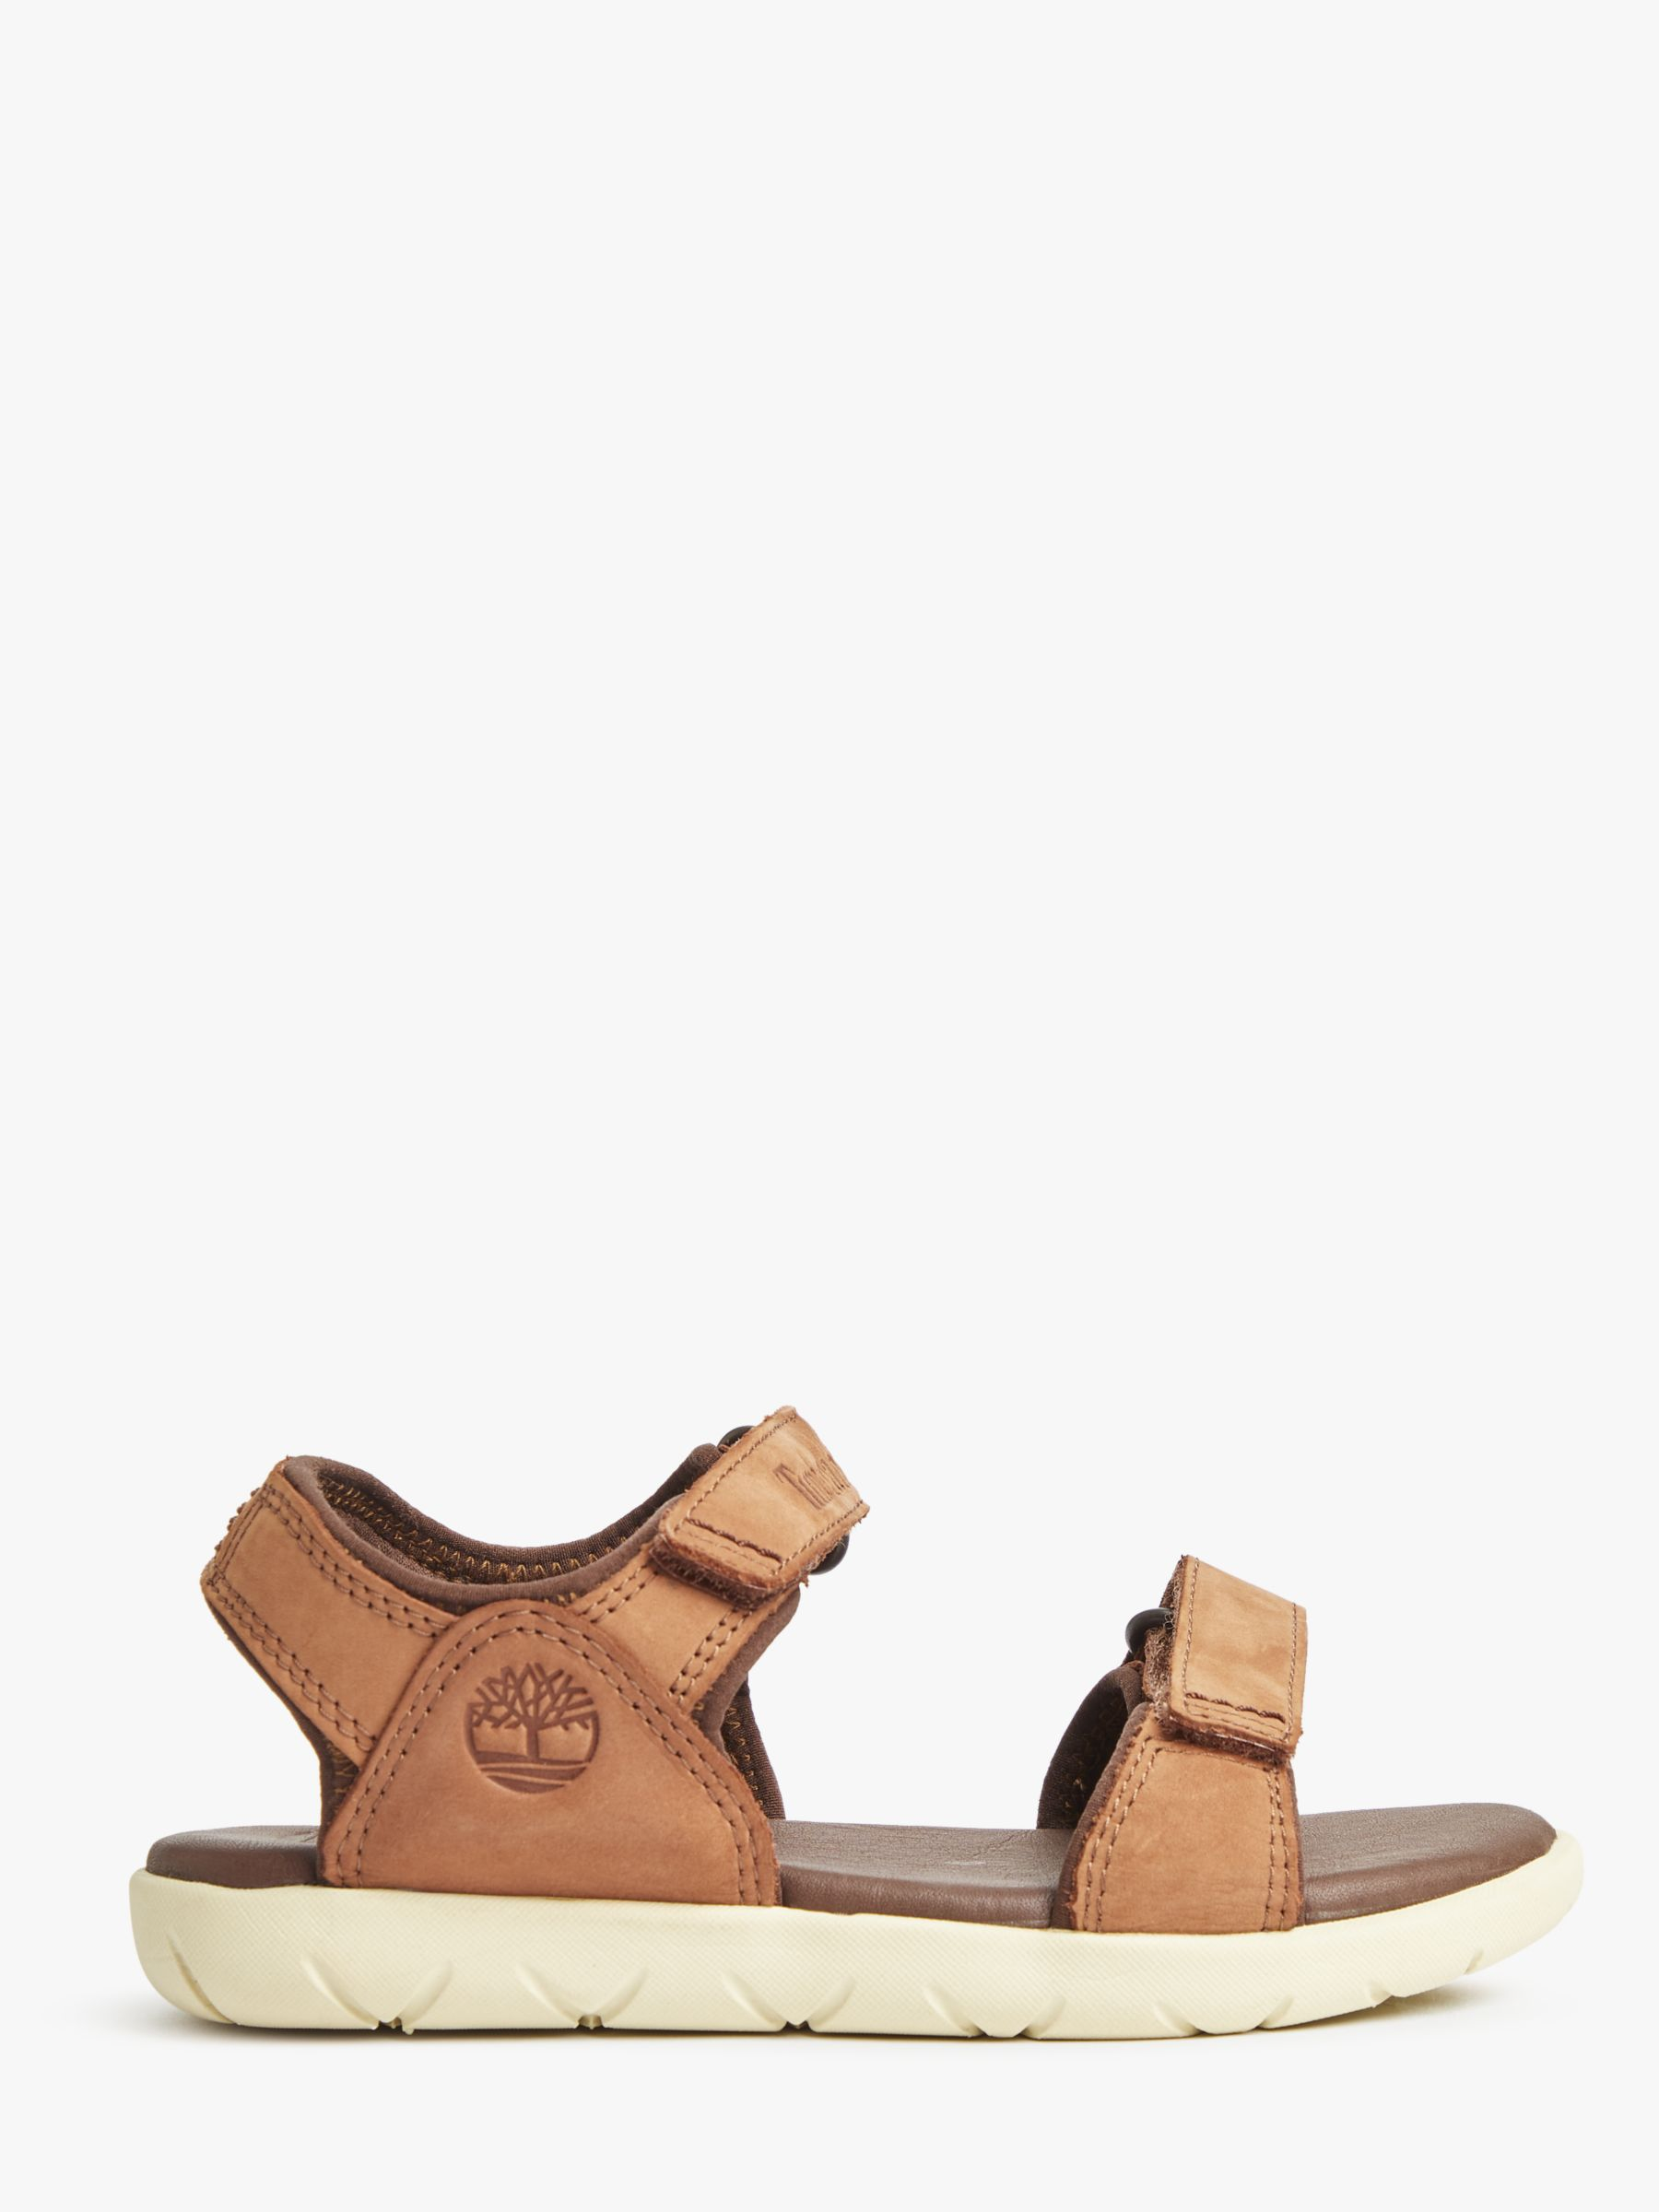 Buy Timberland Children's Nubble Double Strap Sandals, Brown, 26 Online at www.retrievedmagnetic.com